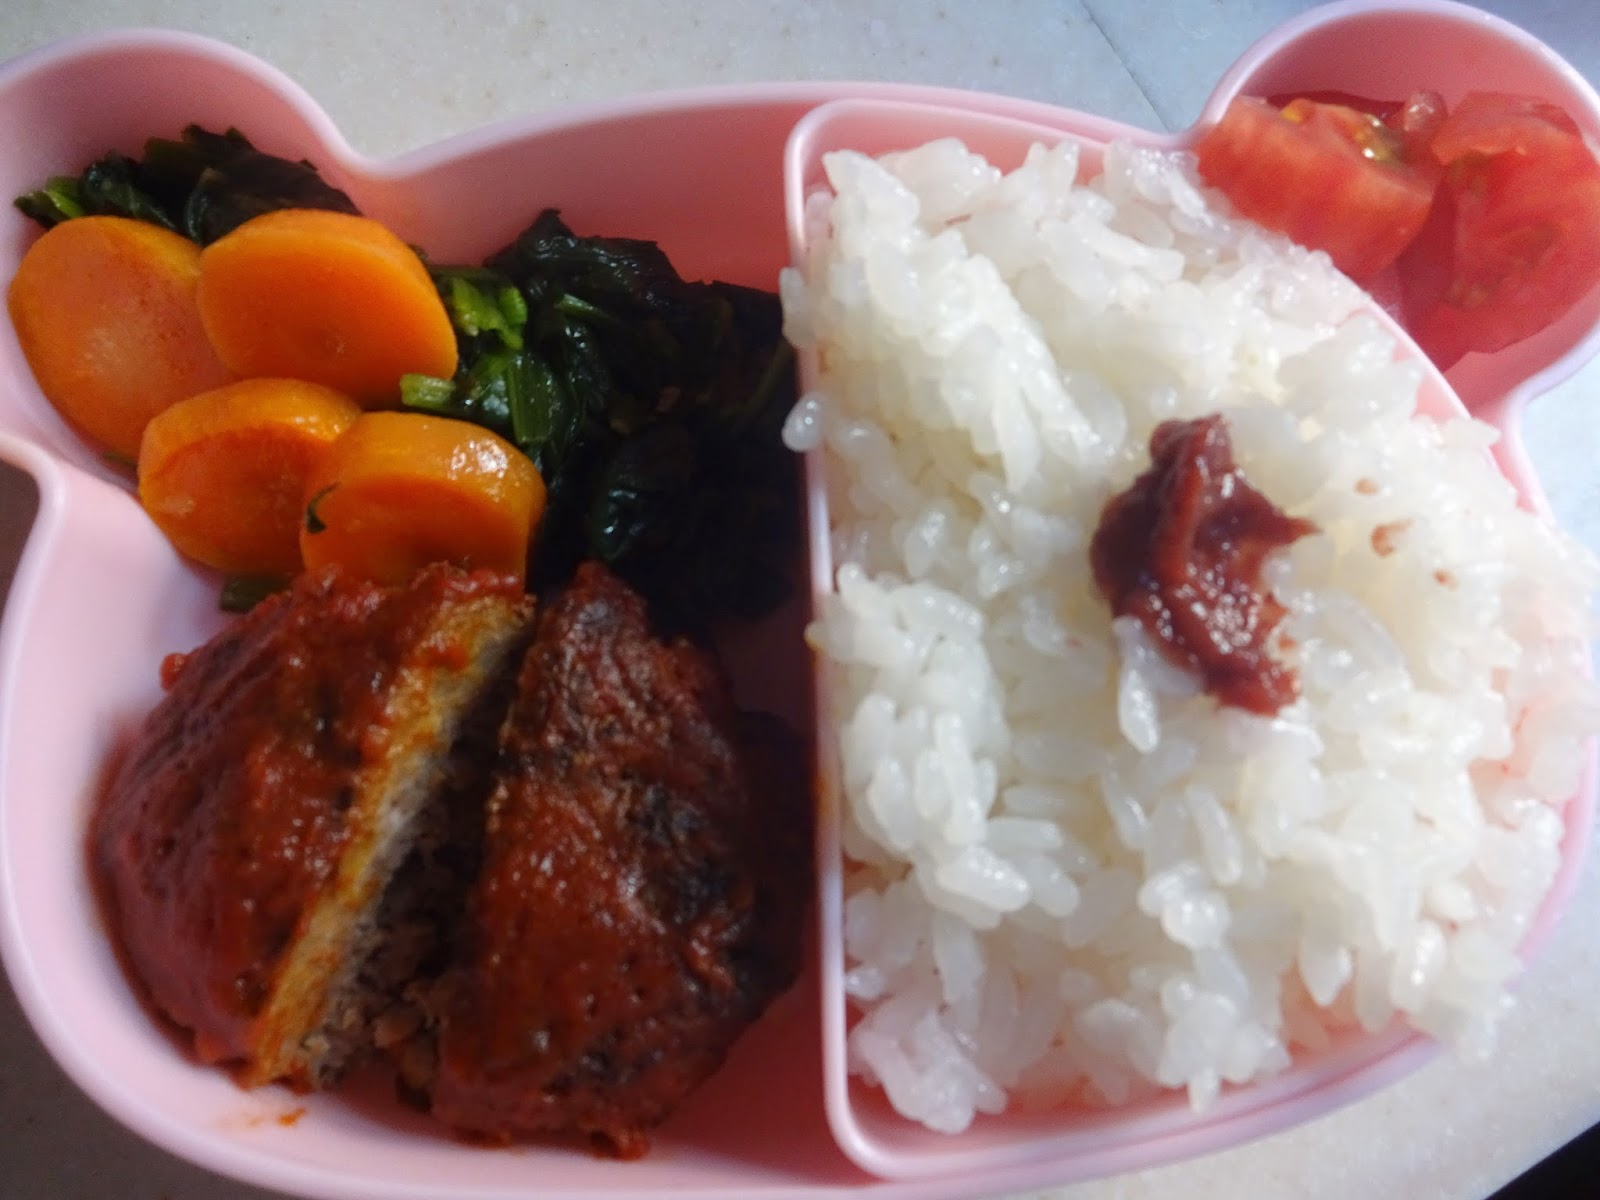 Hamburg Steak with Red Wine and Tomato Sauce Carrot and Spinach Saute ...